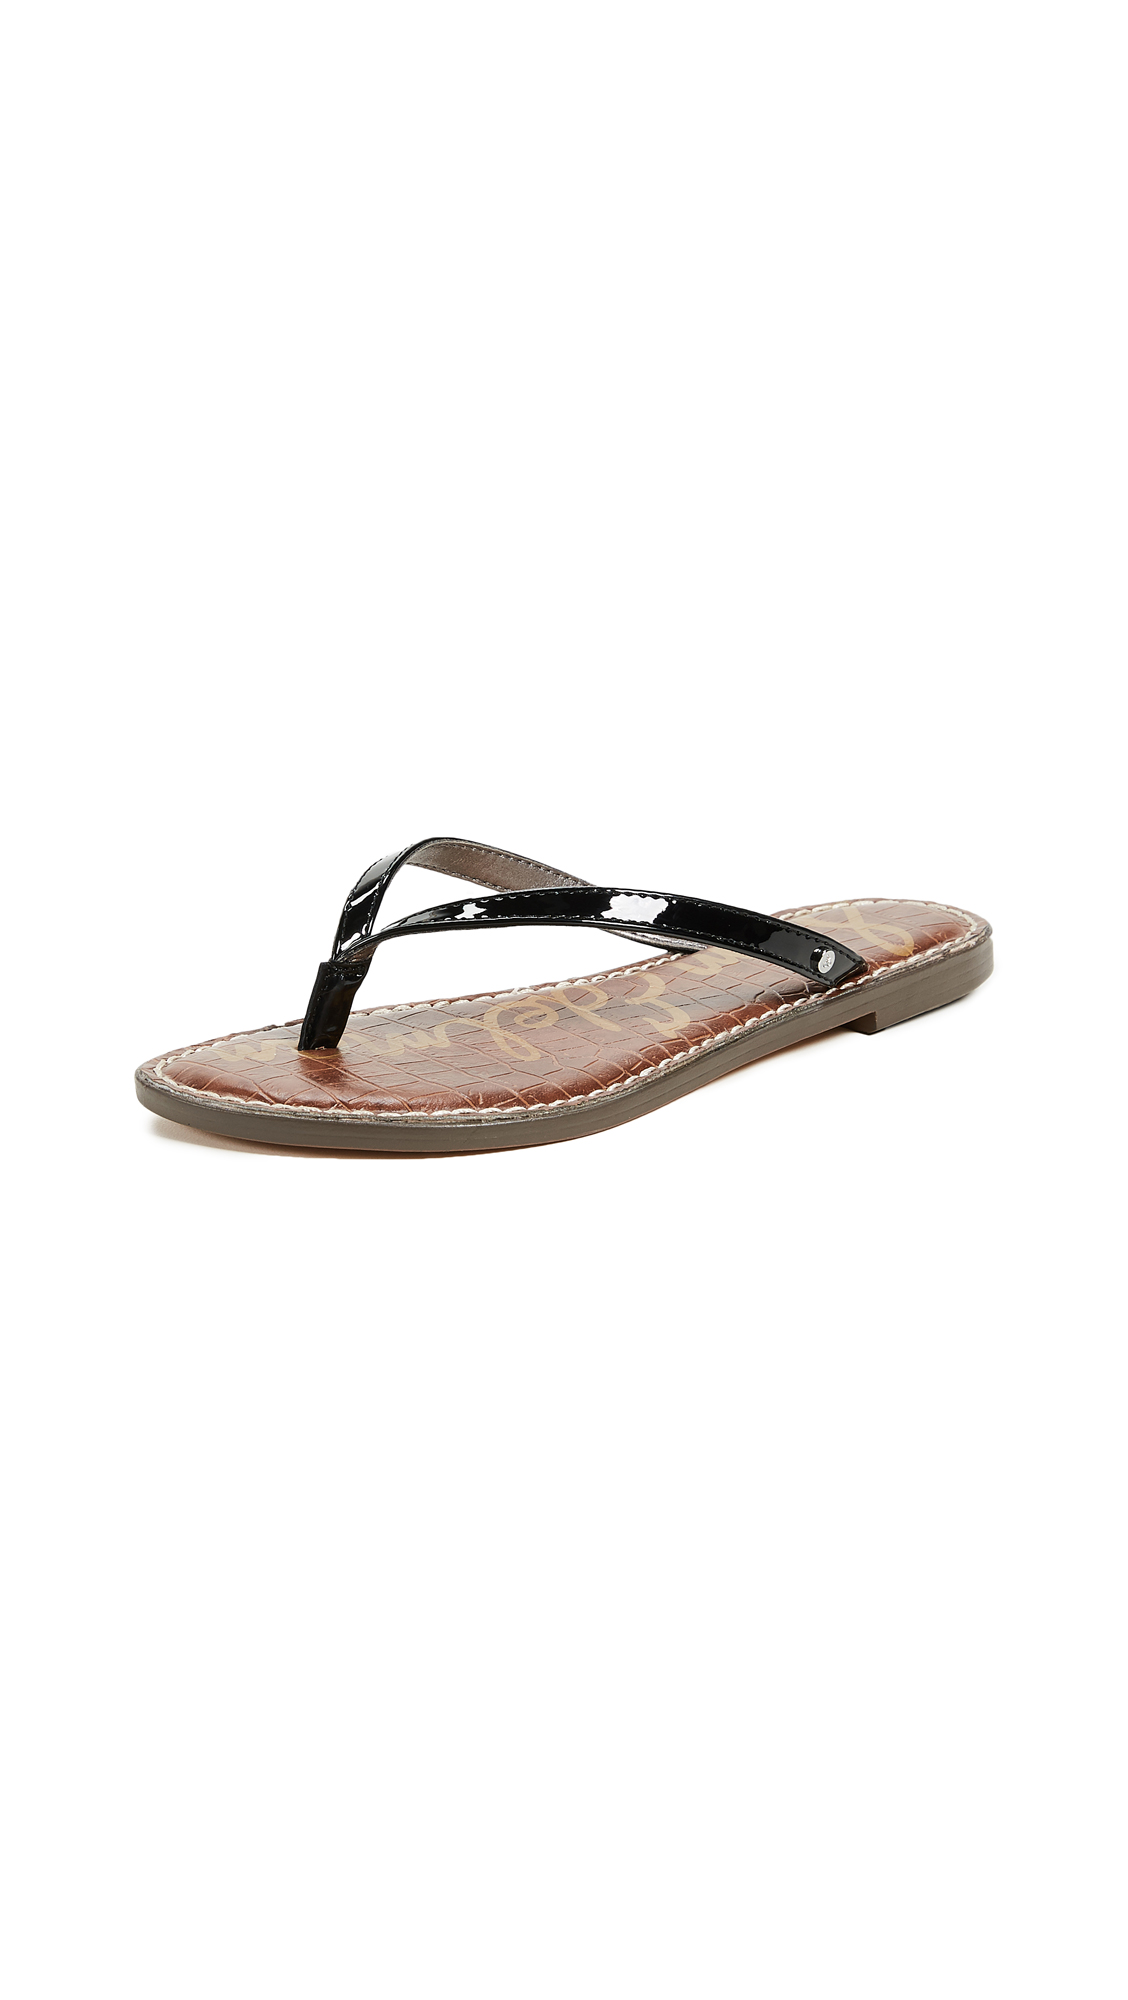 Sam Edelman Gracie Thong Sandals - Black